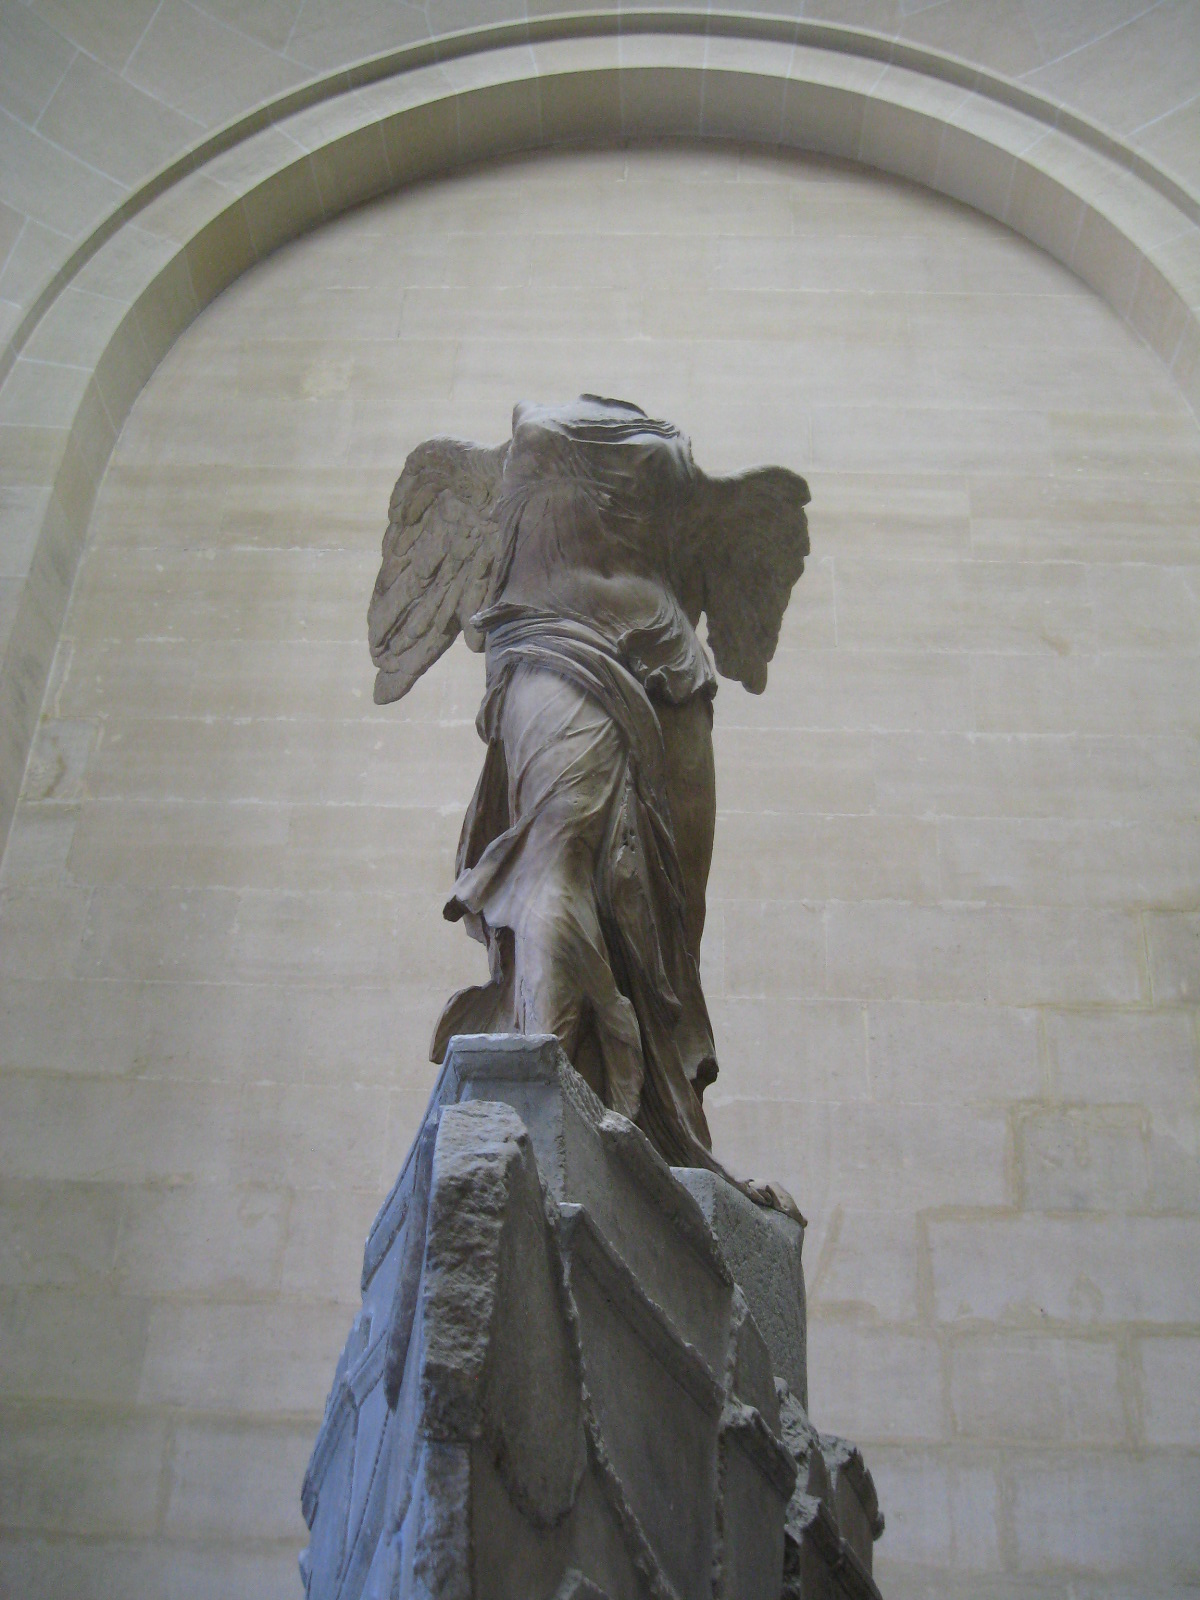 Interesting facts about the Winged Victory of Samothrace